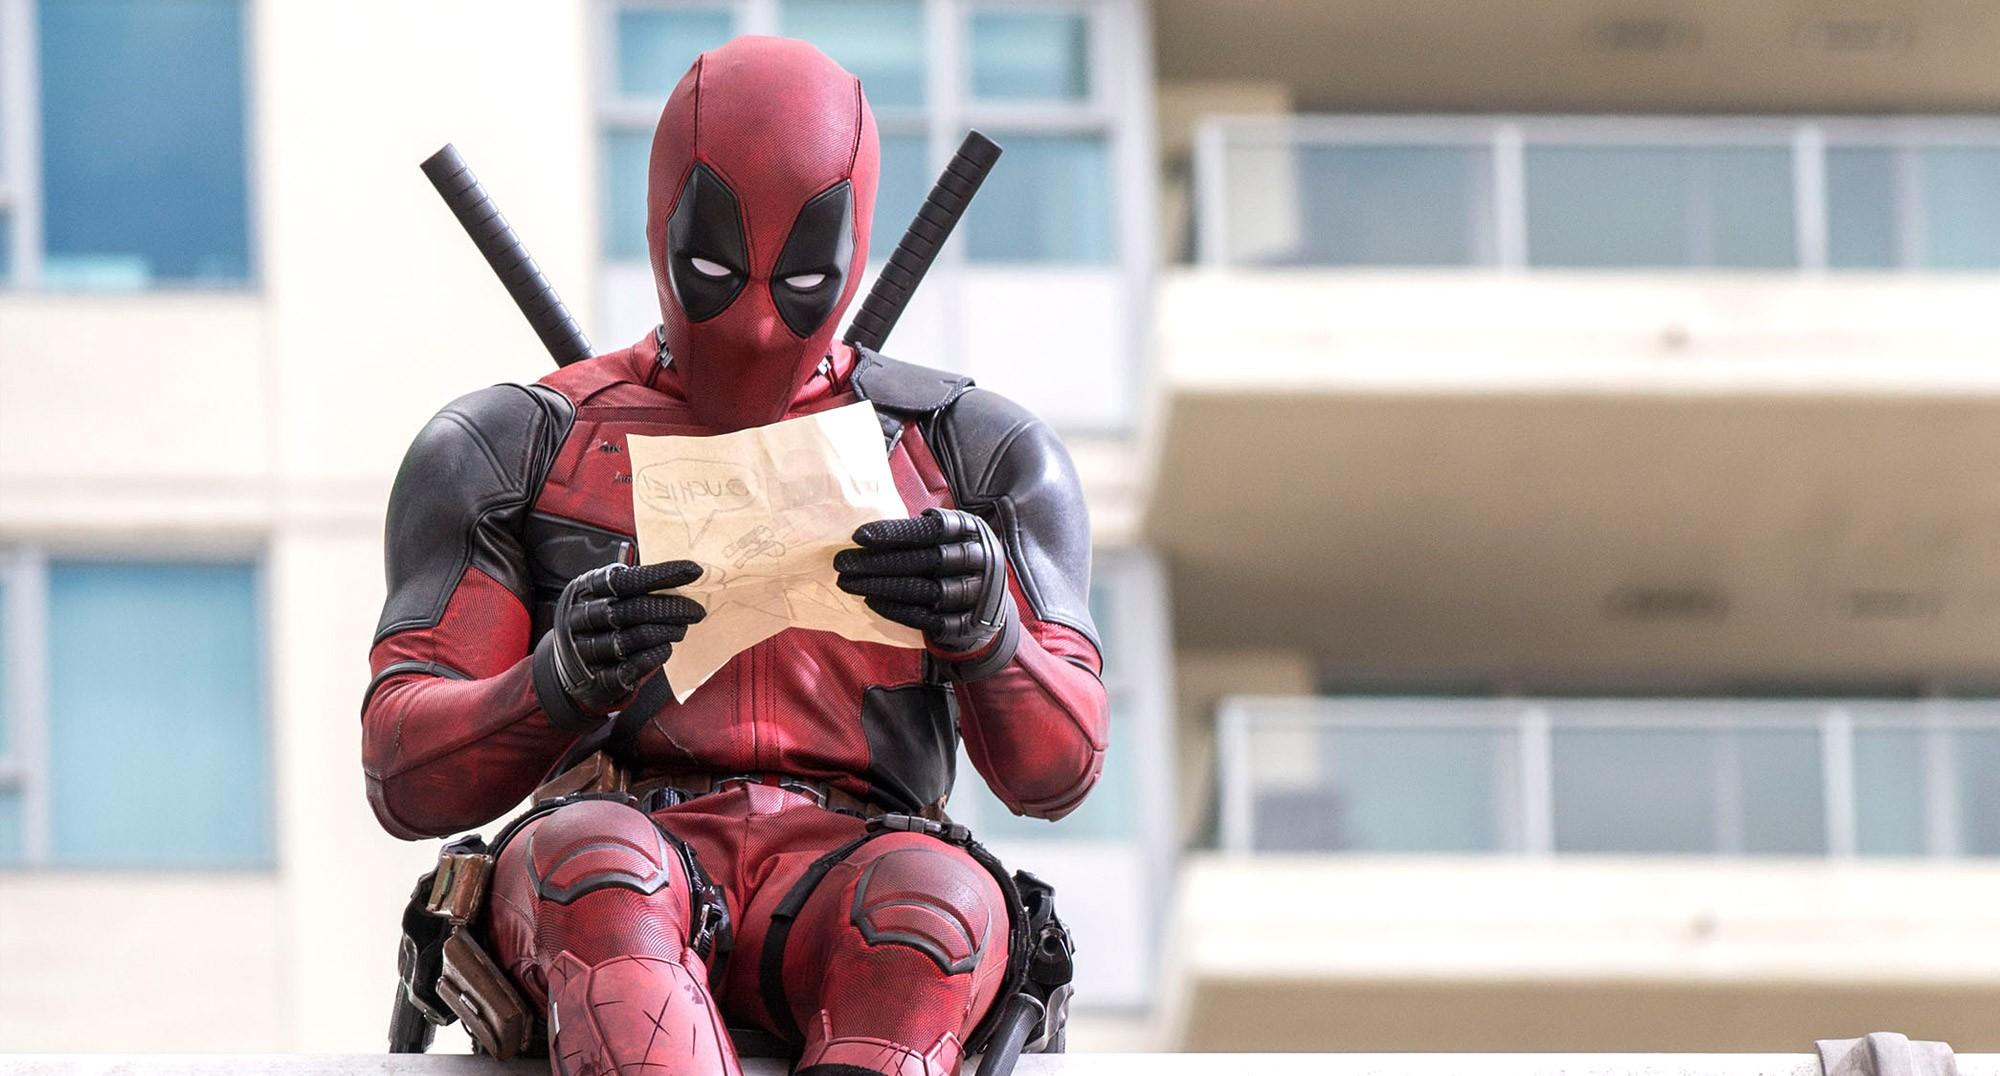 Deadpool 2 director Tim Miller exits due to 'creative differences' with lead actor Ryan Reynolds